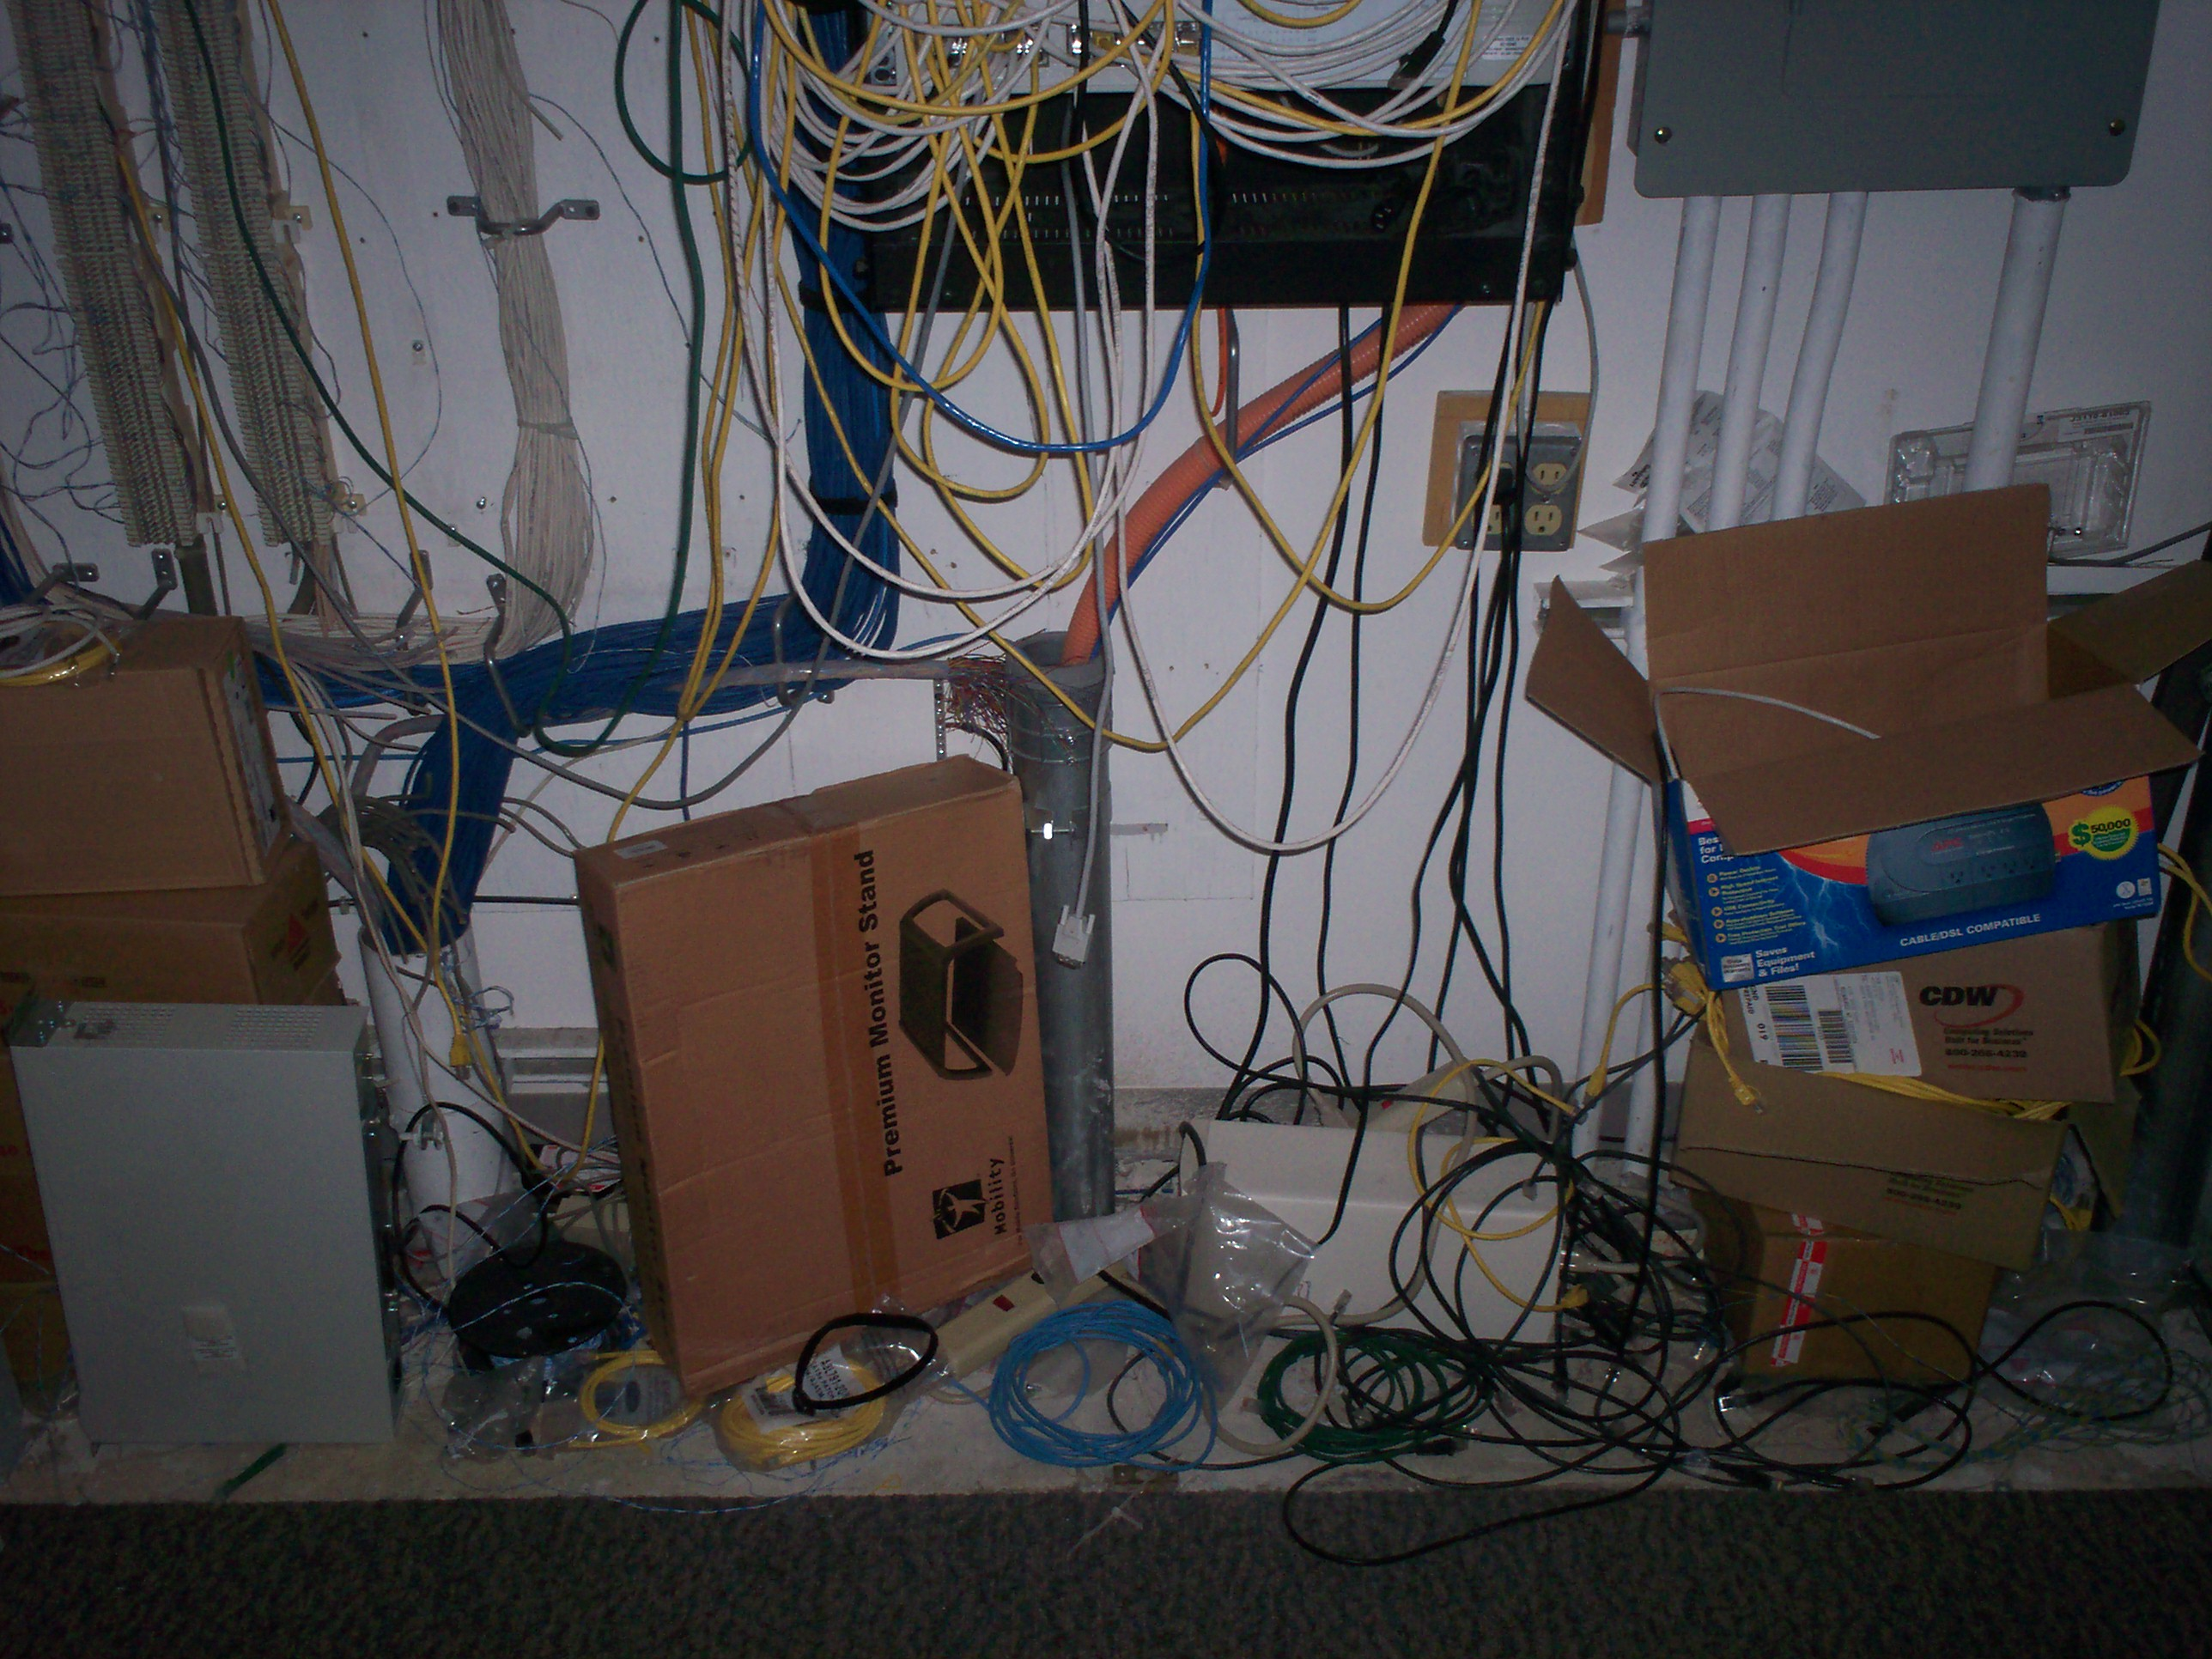 I Used To Work Here Around Teh Table Wiring Closet Mess The Floor Of Comm